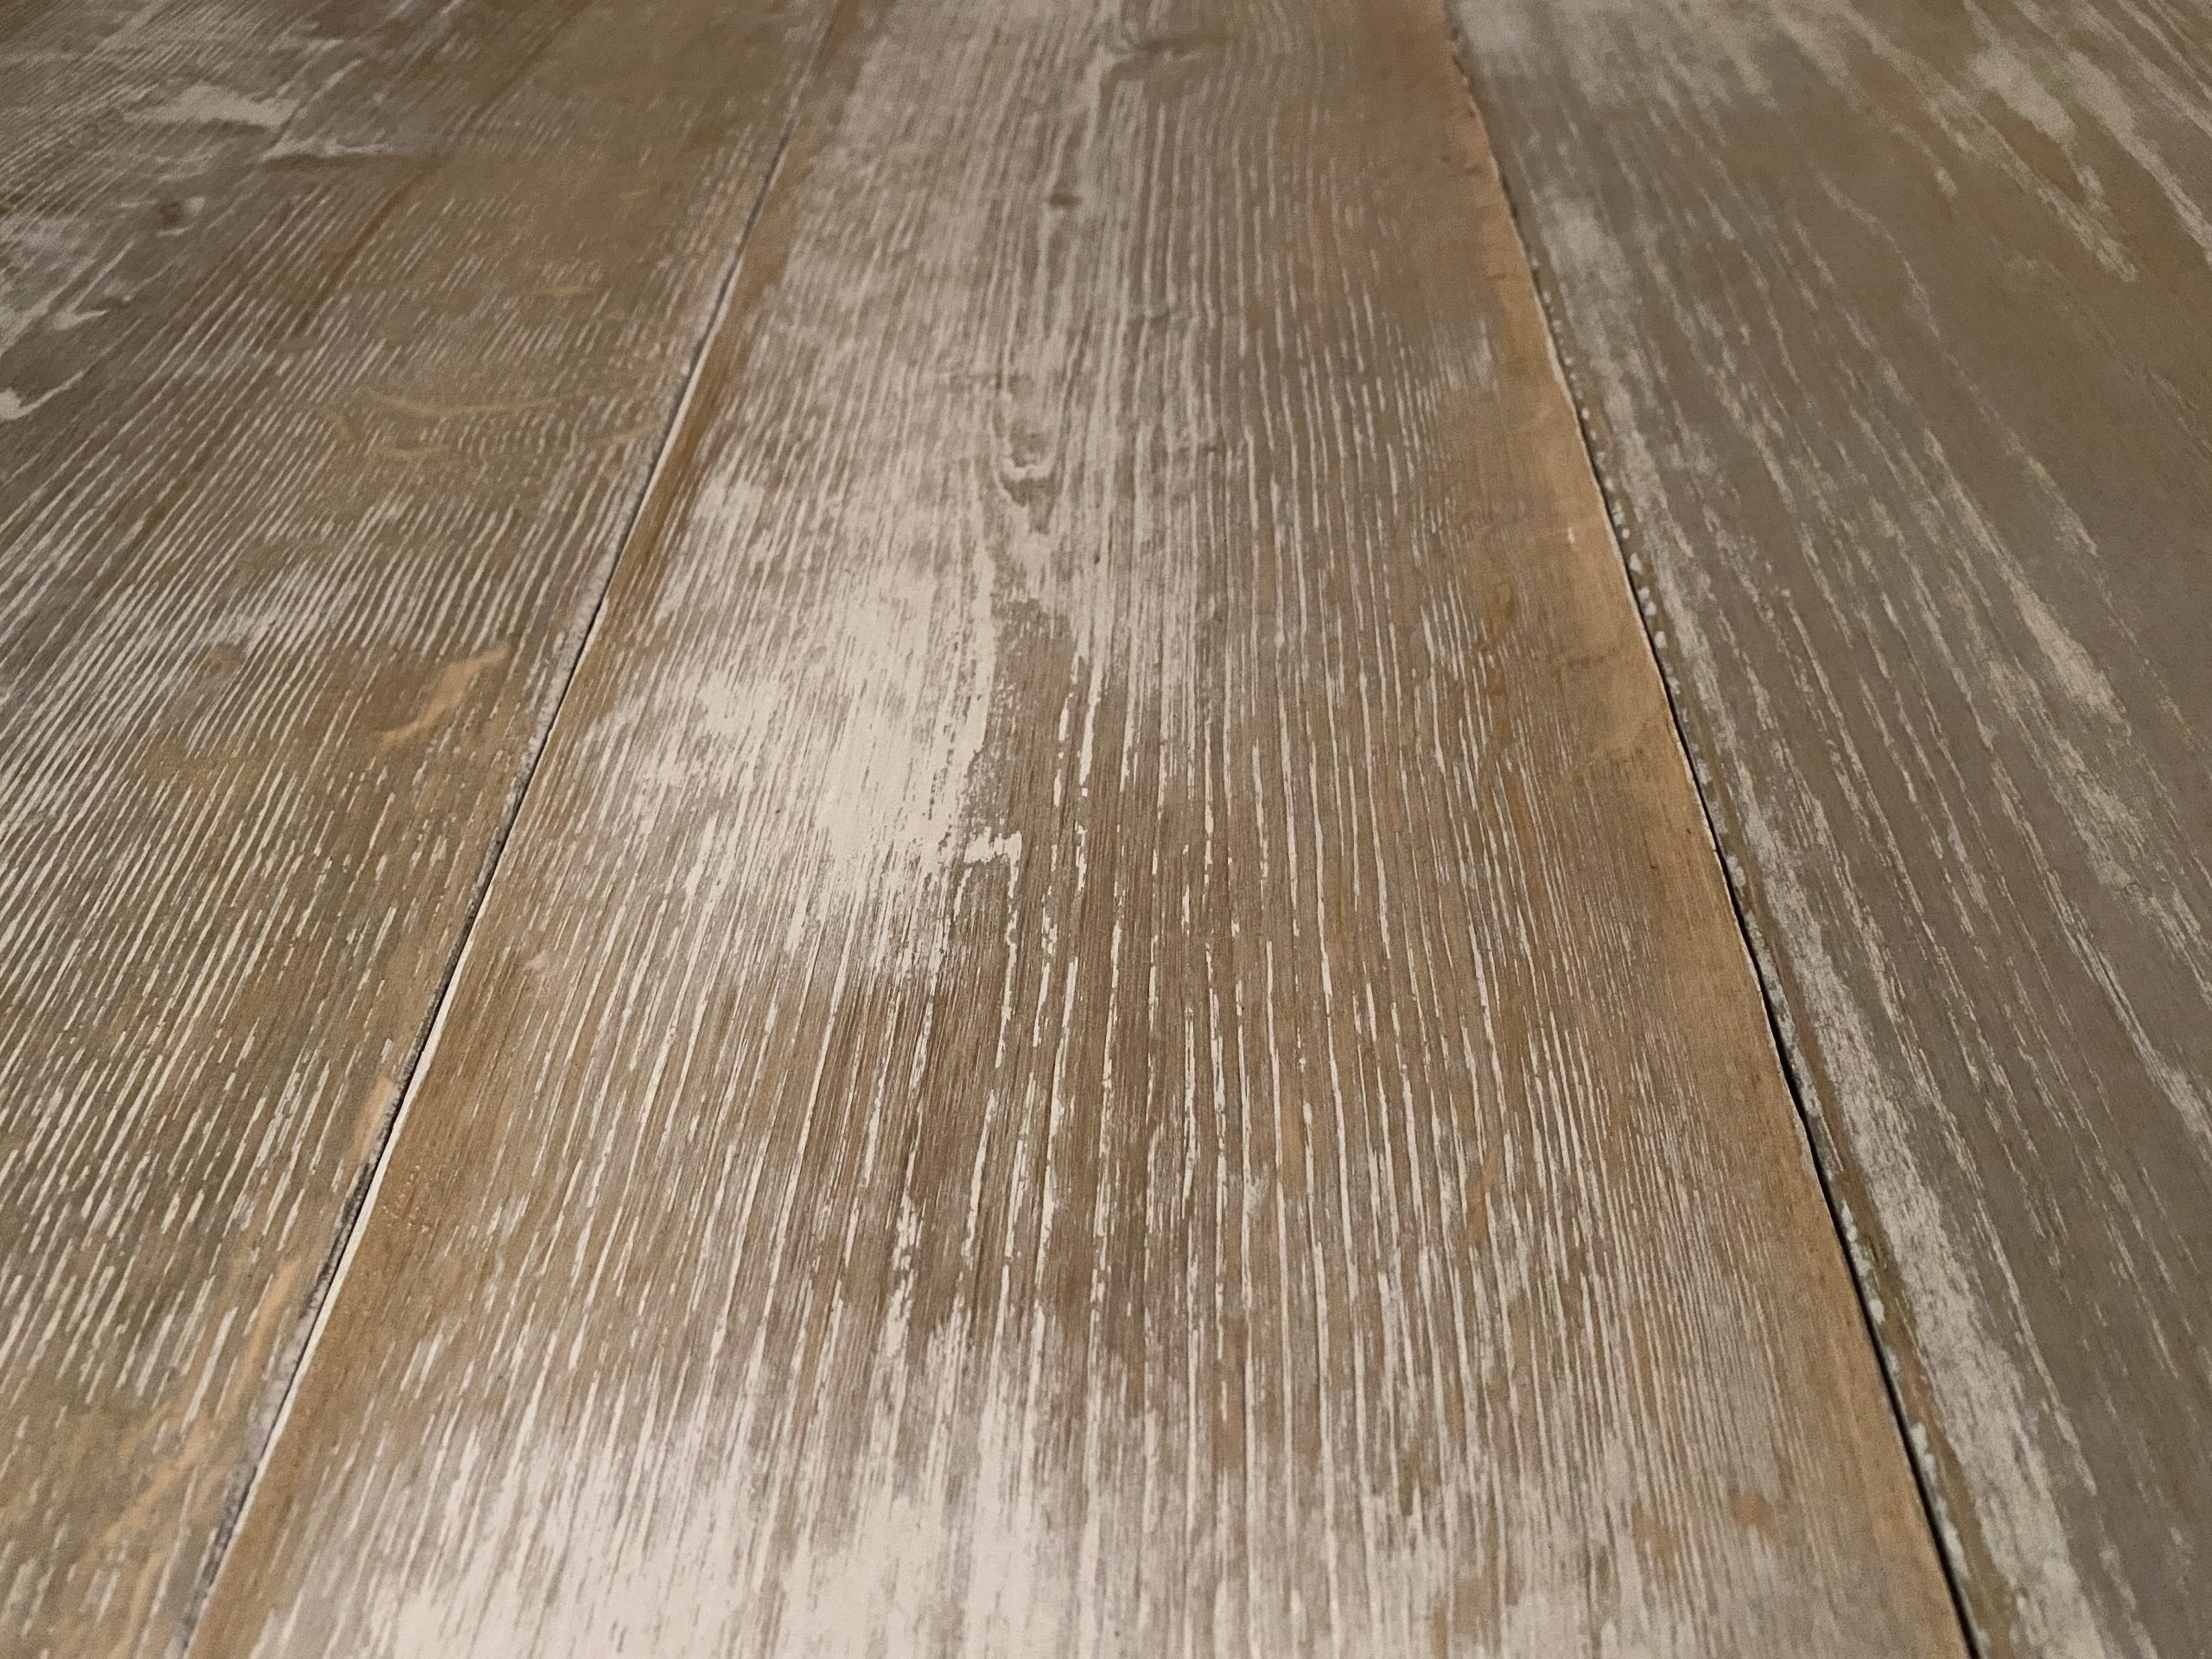 Plank of oak with crackled white paint